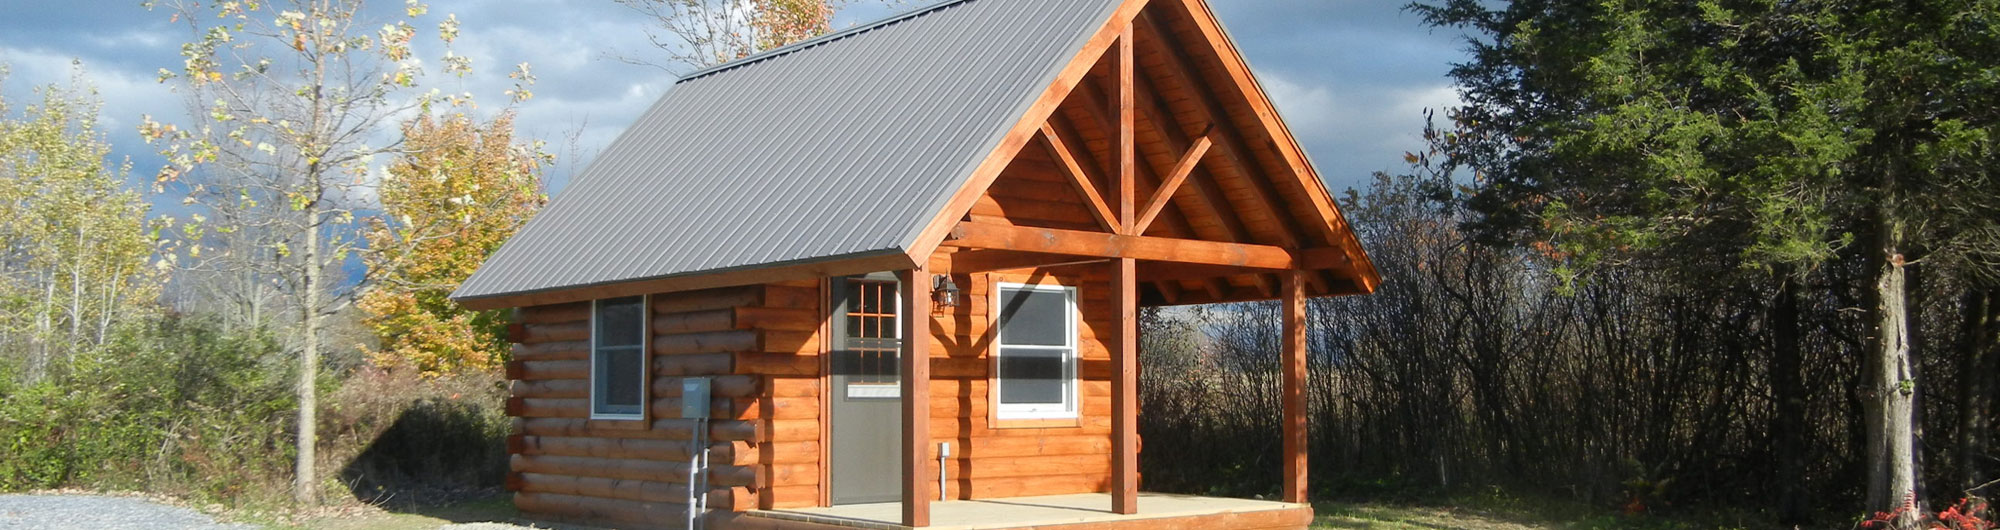 result pin image in vermont realloghomes cabin cabins log for rent